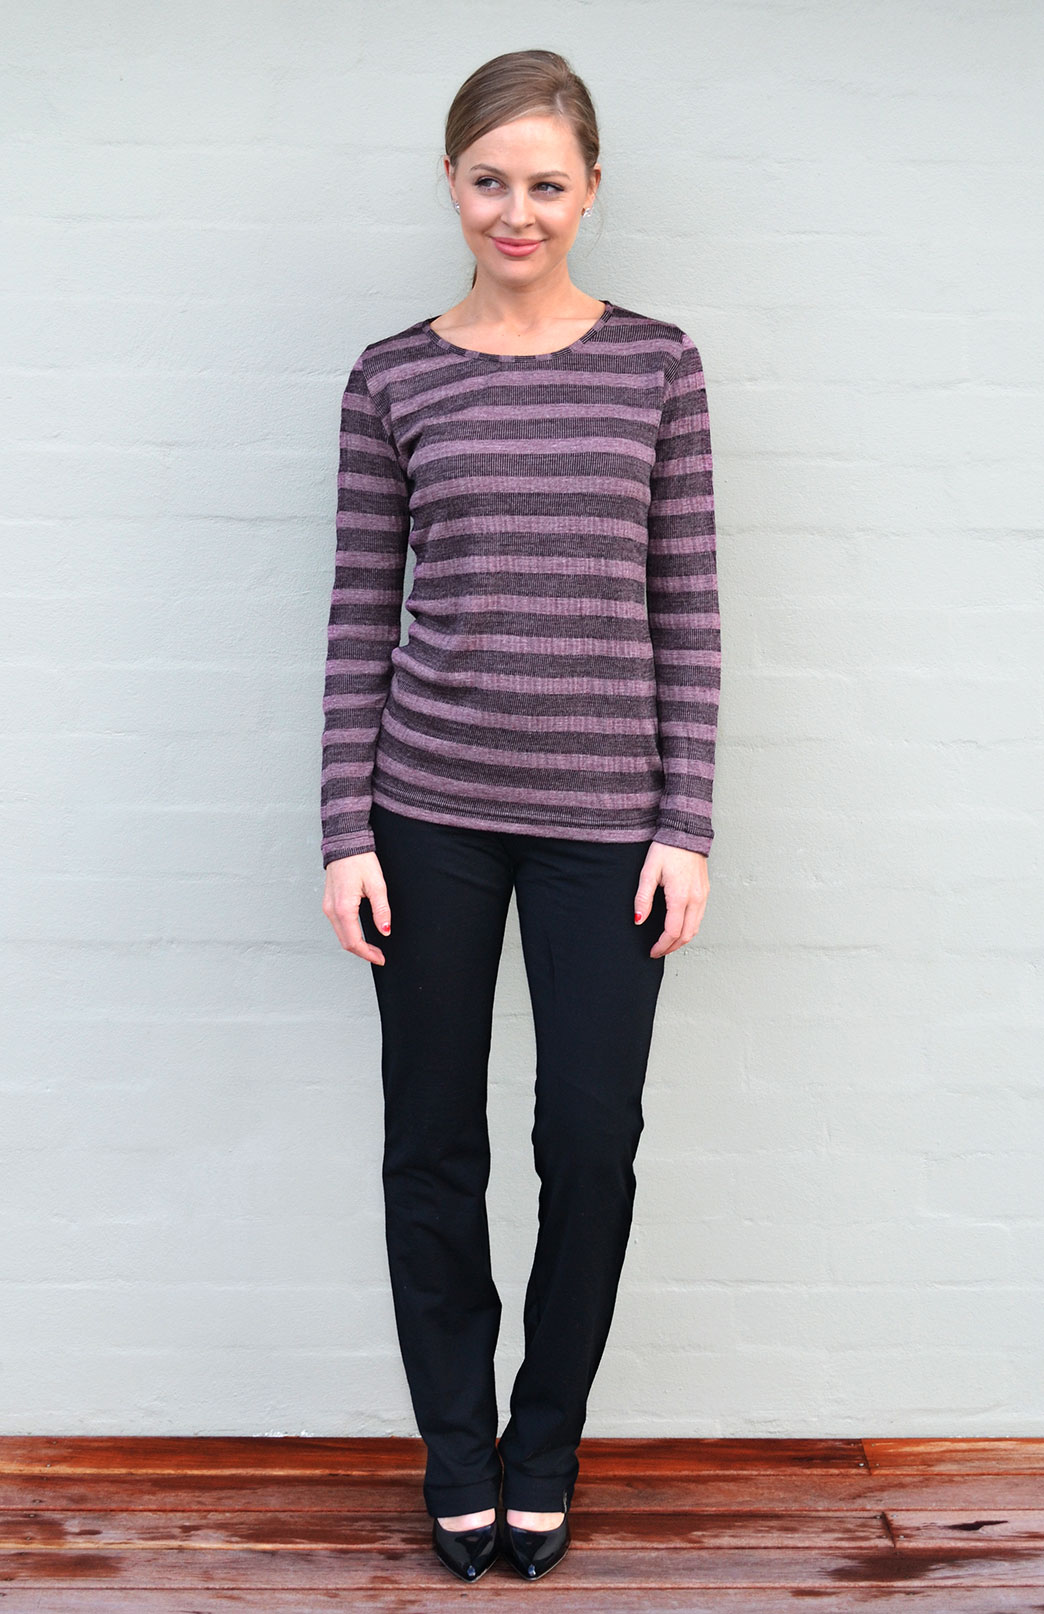 Round Neck Top - Patterned - Women's Purple Raisin Aztec Patterned Merino Wool Long Sleeved Thermal Fashion Top - Smitten Merino Tasmania Australia